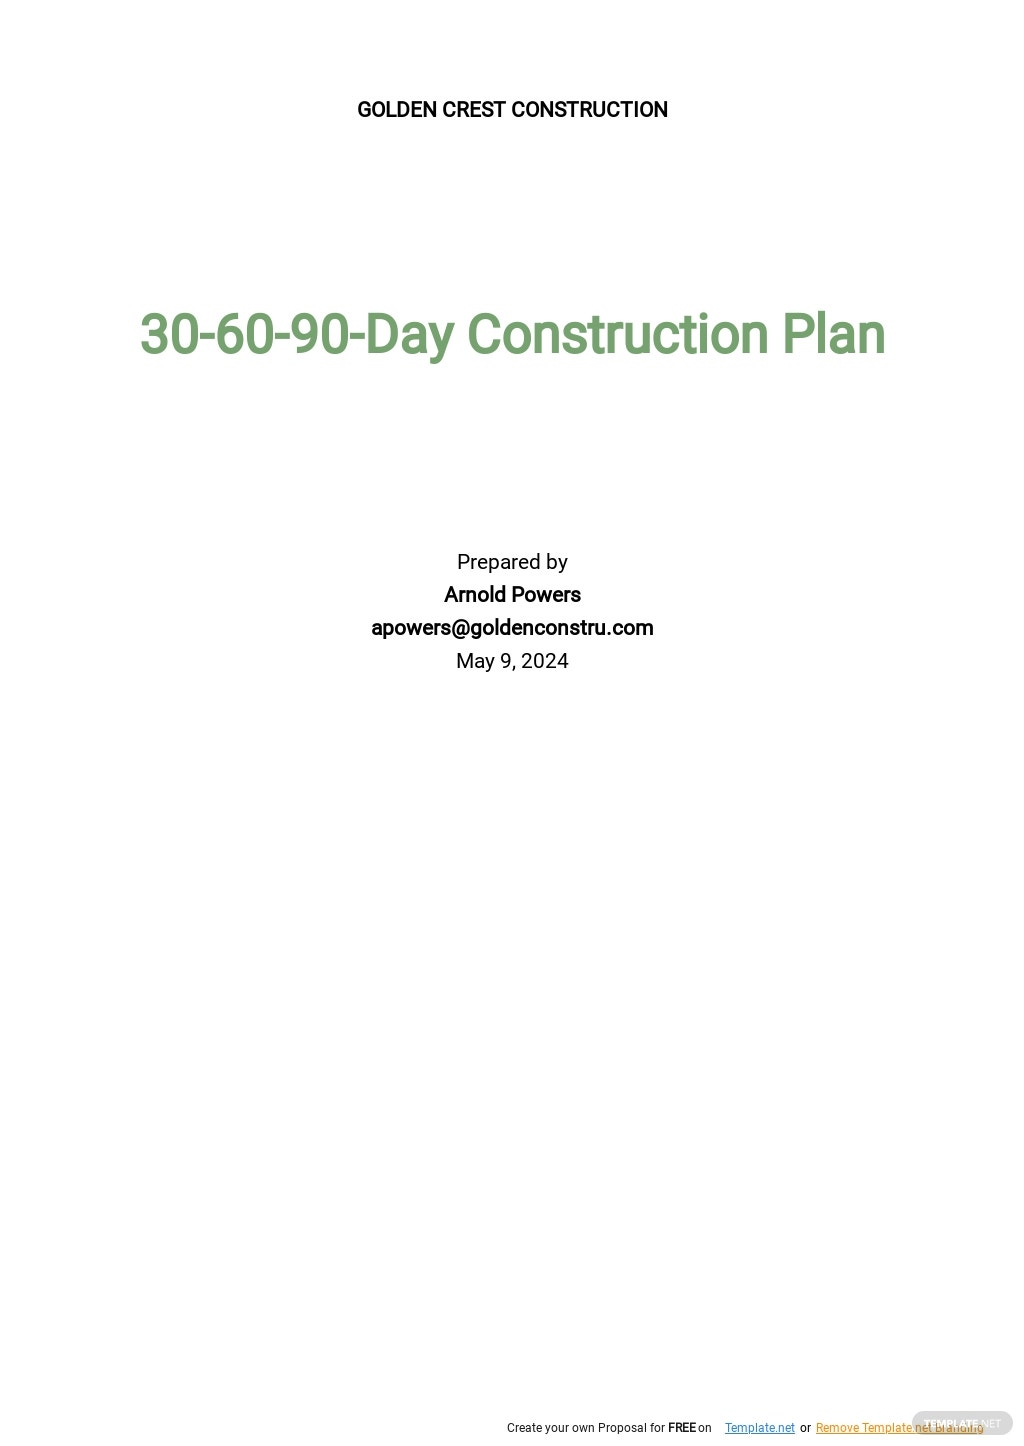 One Page 30 60 90 Day Construction Plan Template.jpe